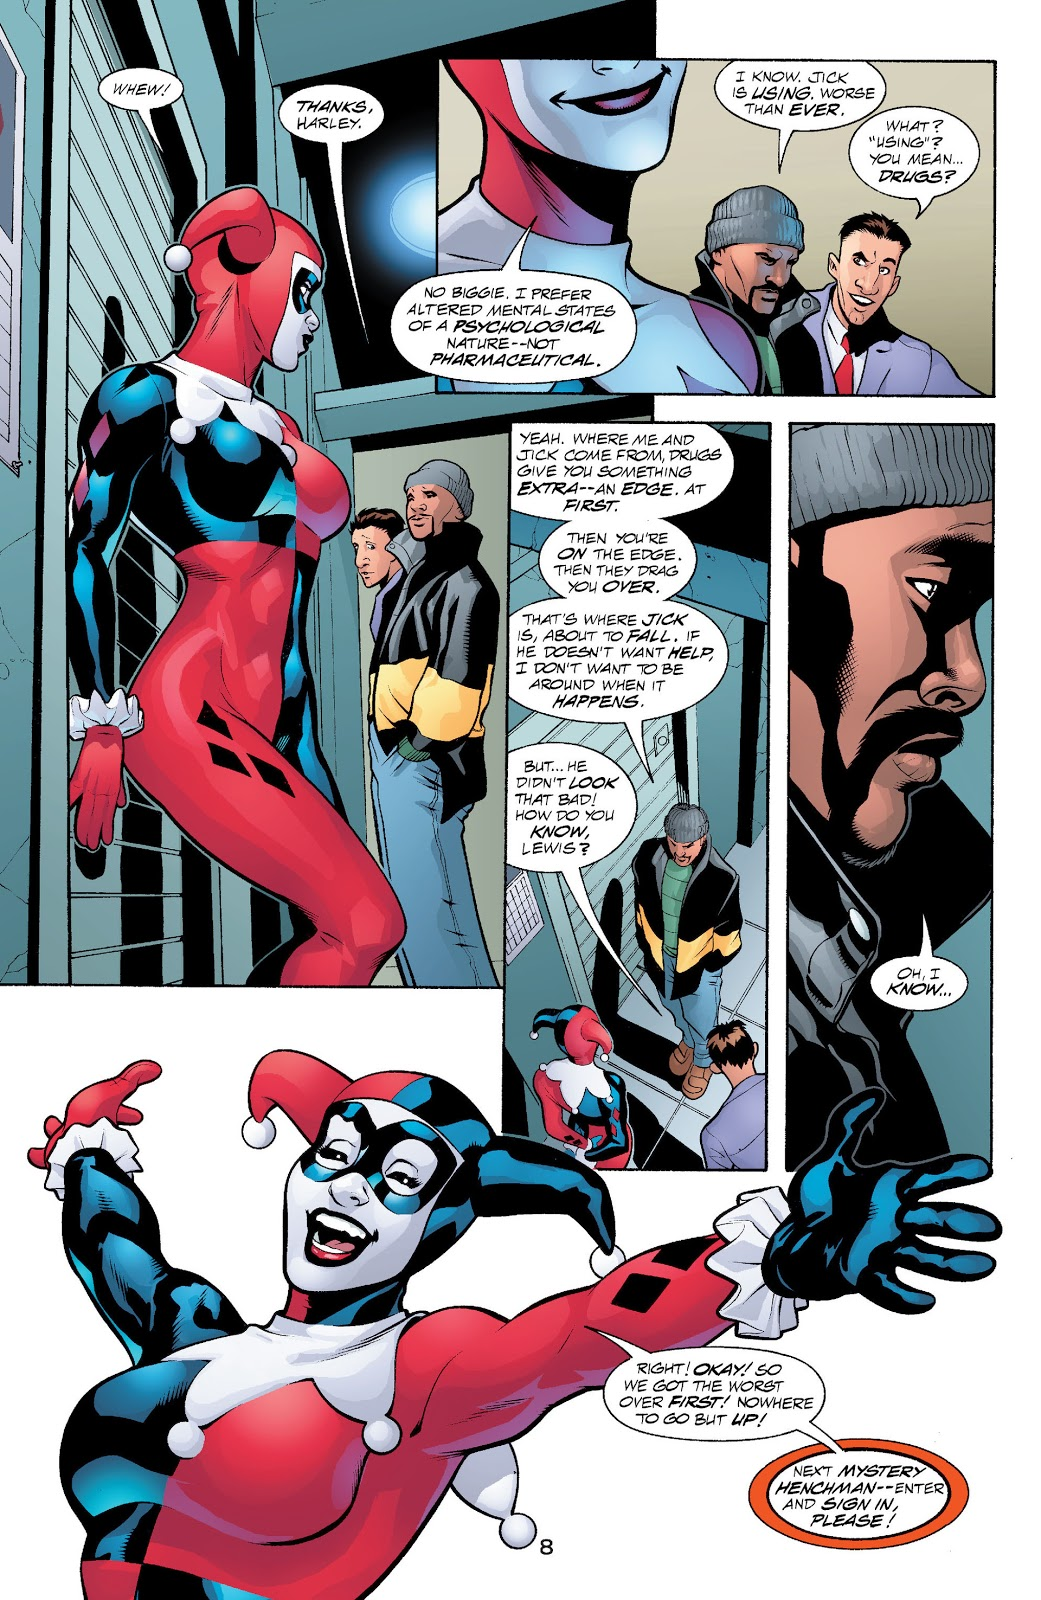 Harley Quinn by Karl Kesel & Terry Dodson Deluxe Edition review